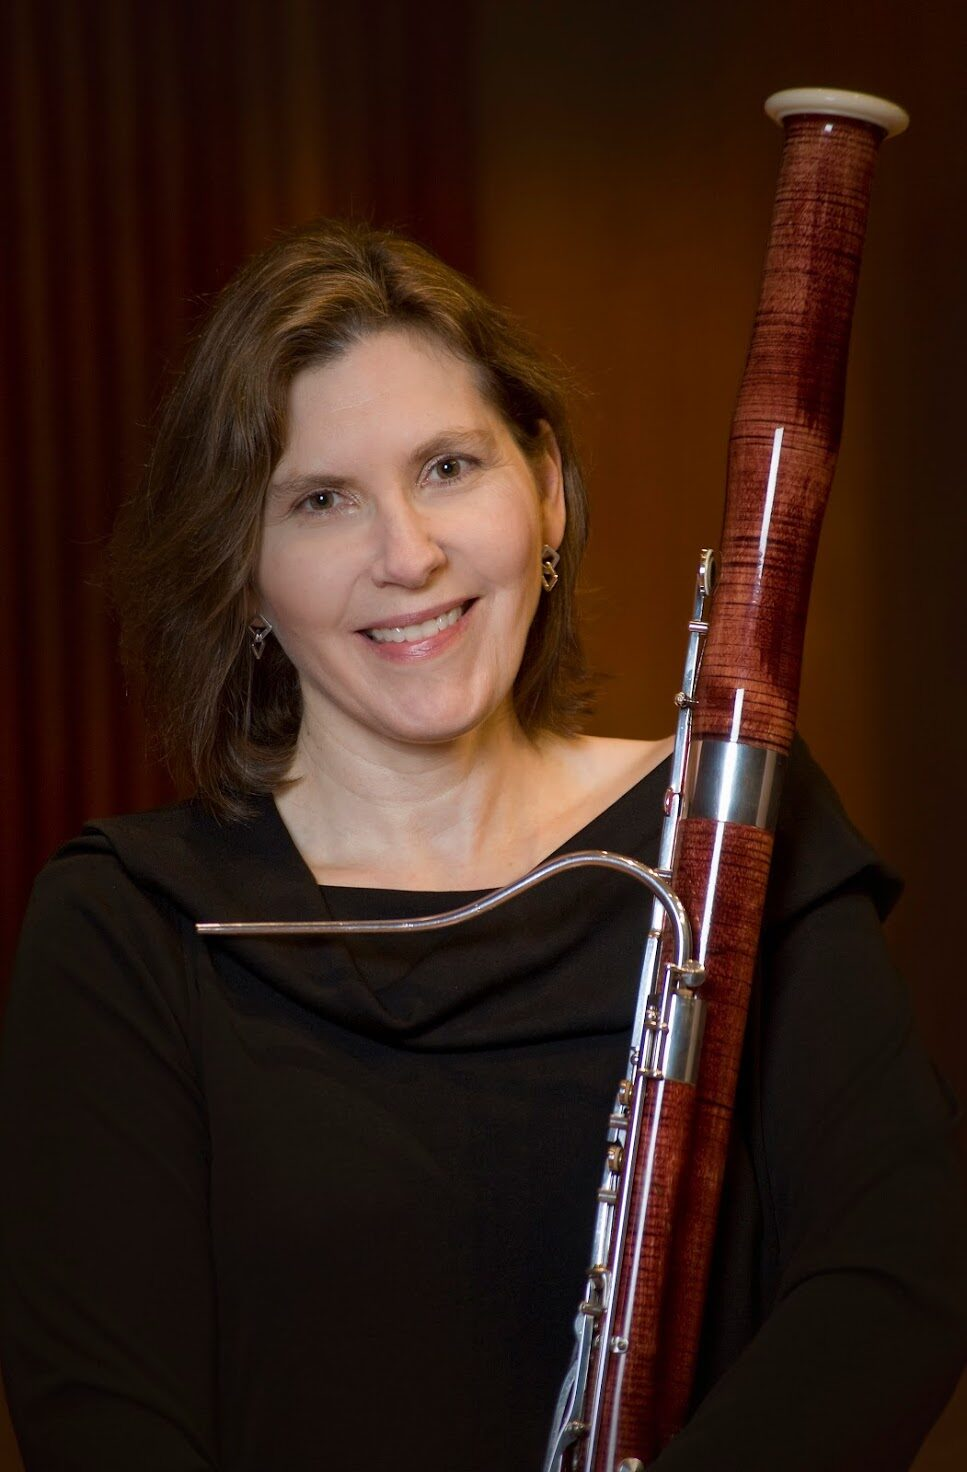 A woman with shoulder-length, wavy hair holds a bassoon and smiles at the camera.